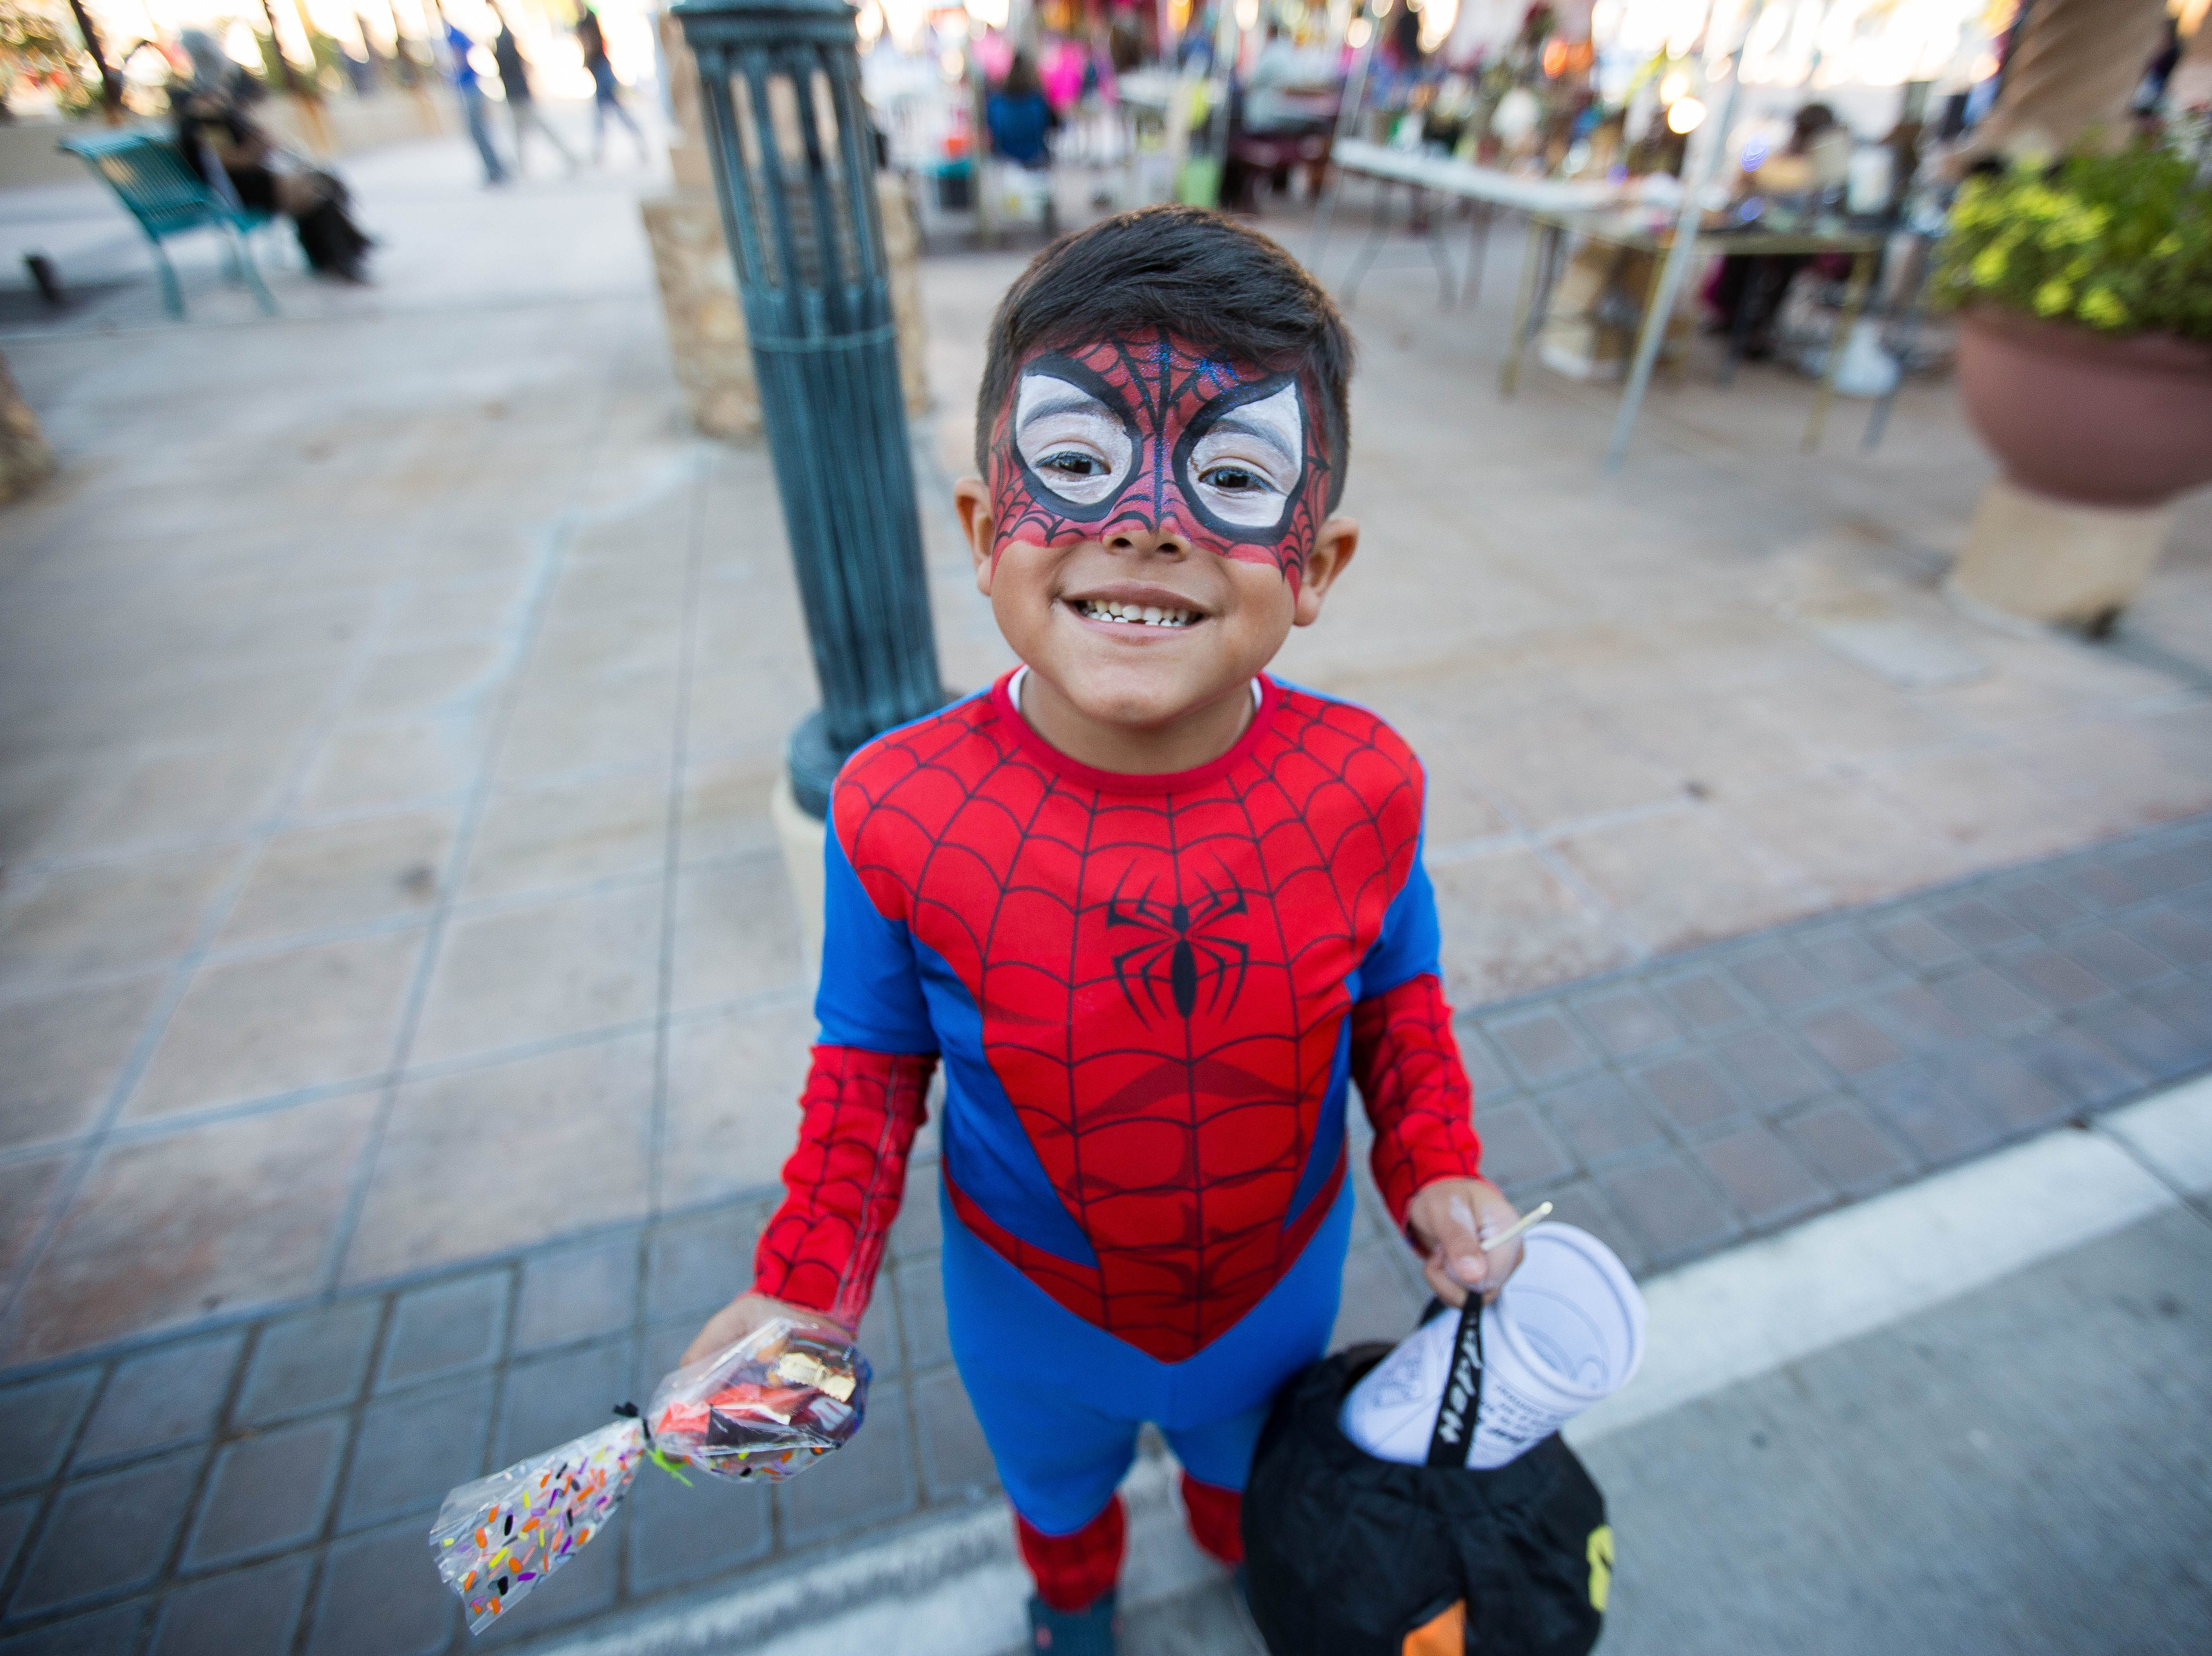 Jayden Zamora, 4, dressed in a Spiderman costume waits to get his balloon Spiderman figure fixed by Matt Hall of Party Animals Balloons and More, during the Farmers Market Fall Festival at the Plaza de Las Cruces, Wednesday October 24, 2018.